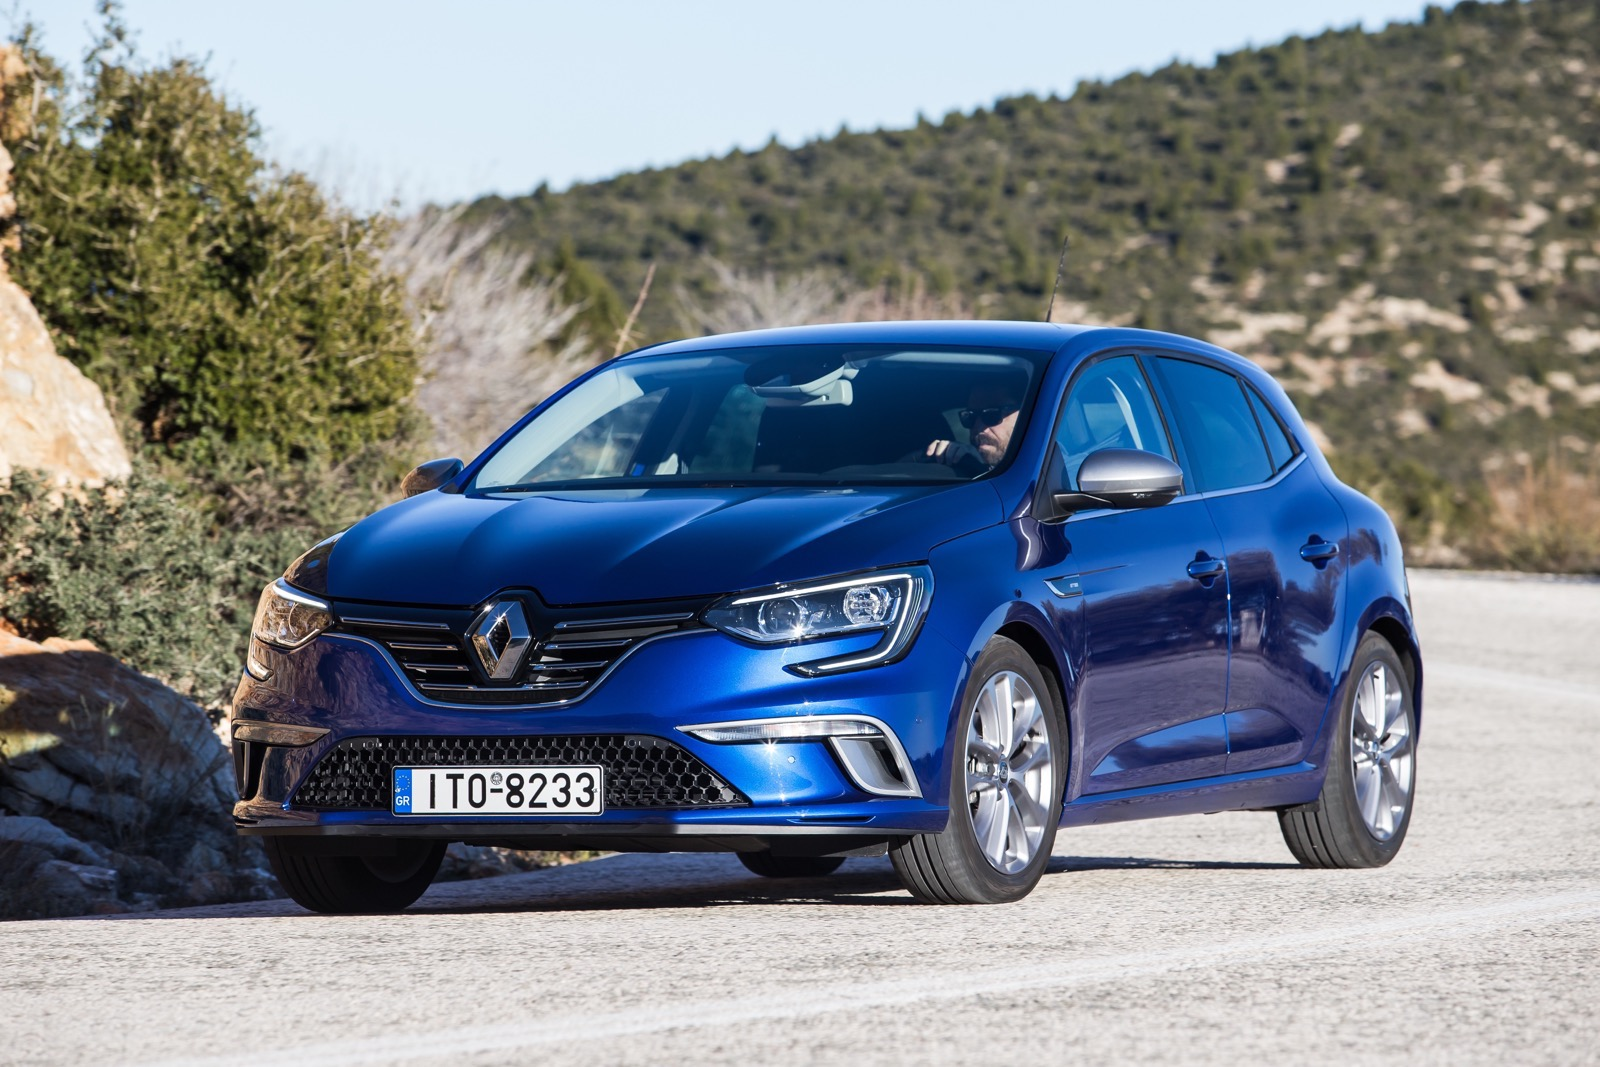 First_Drive_Renault_Megane_73